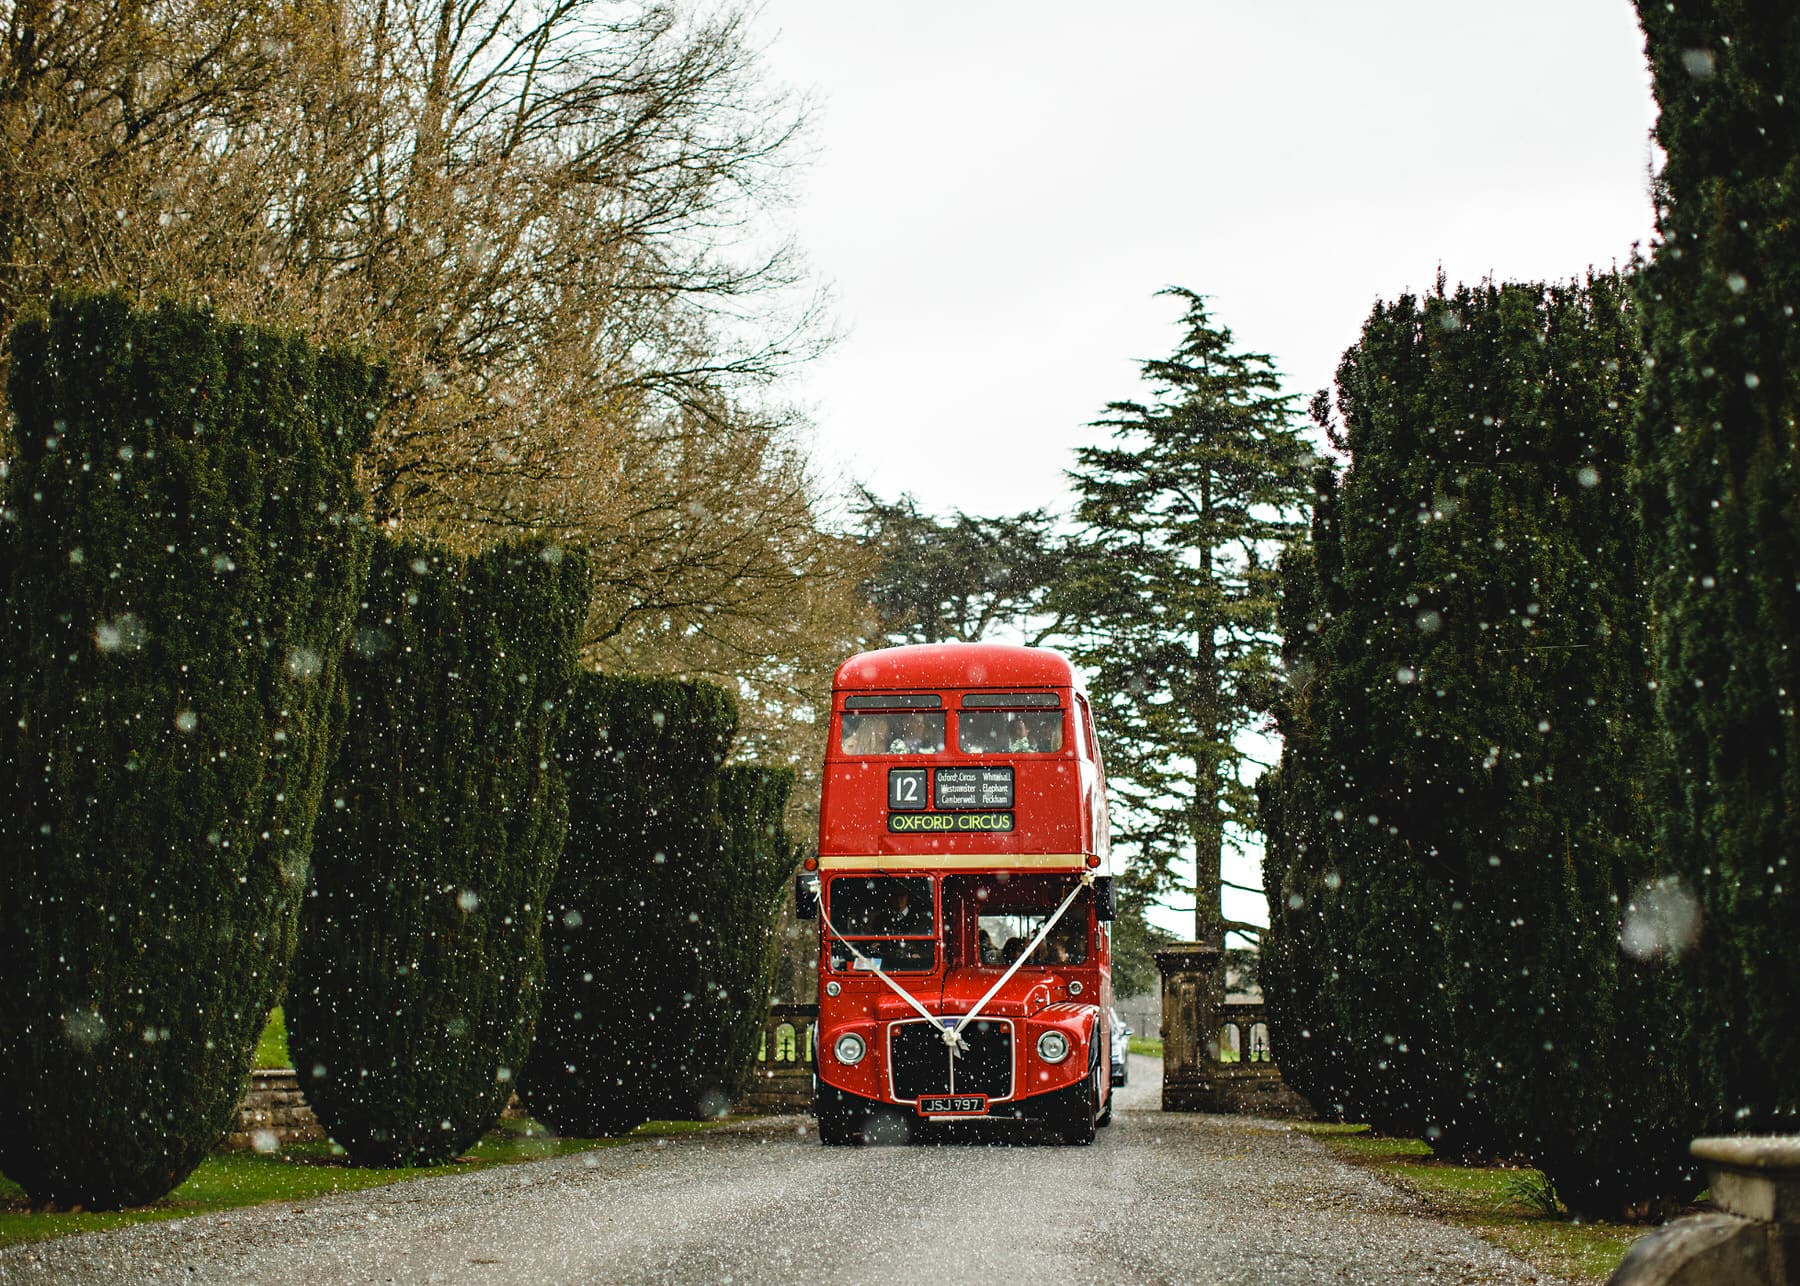 red bus arriving in the snow at Osmaston Park in Derbyshire